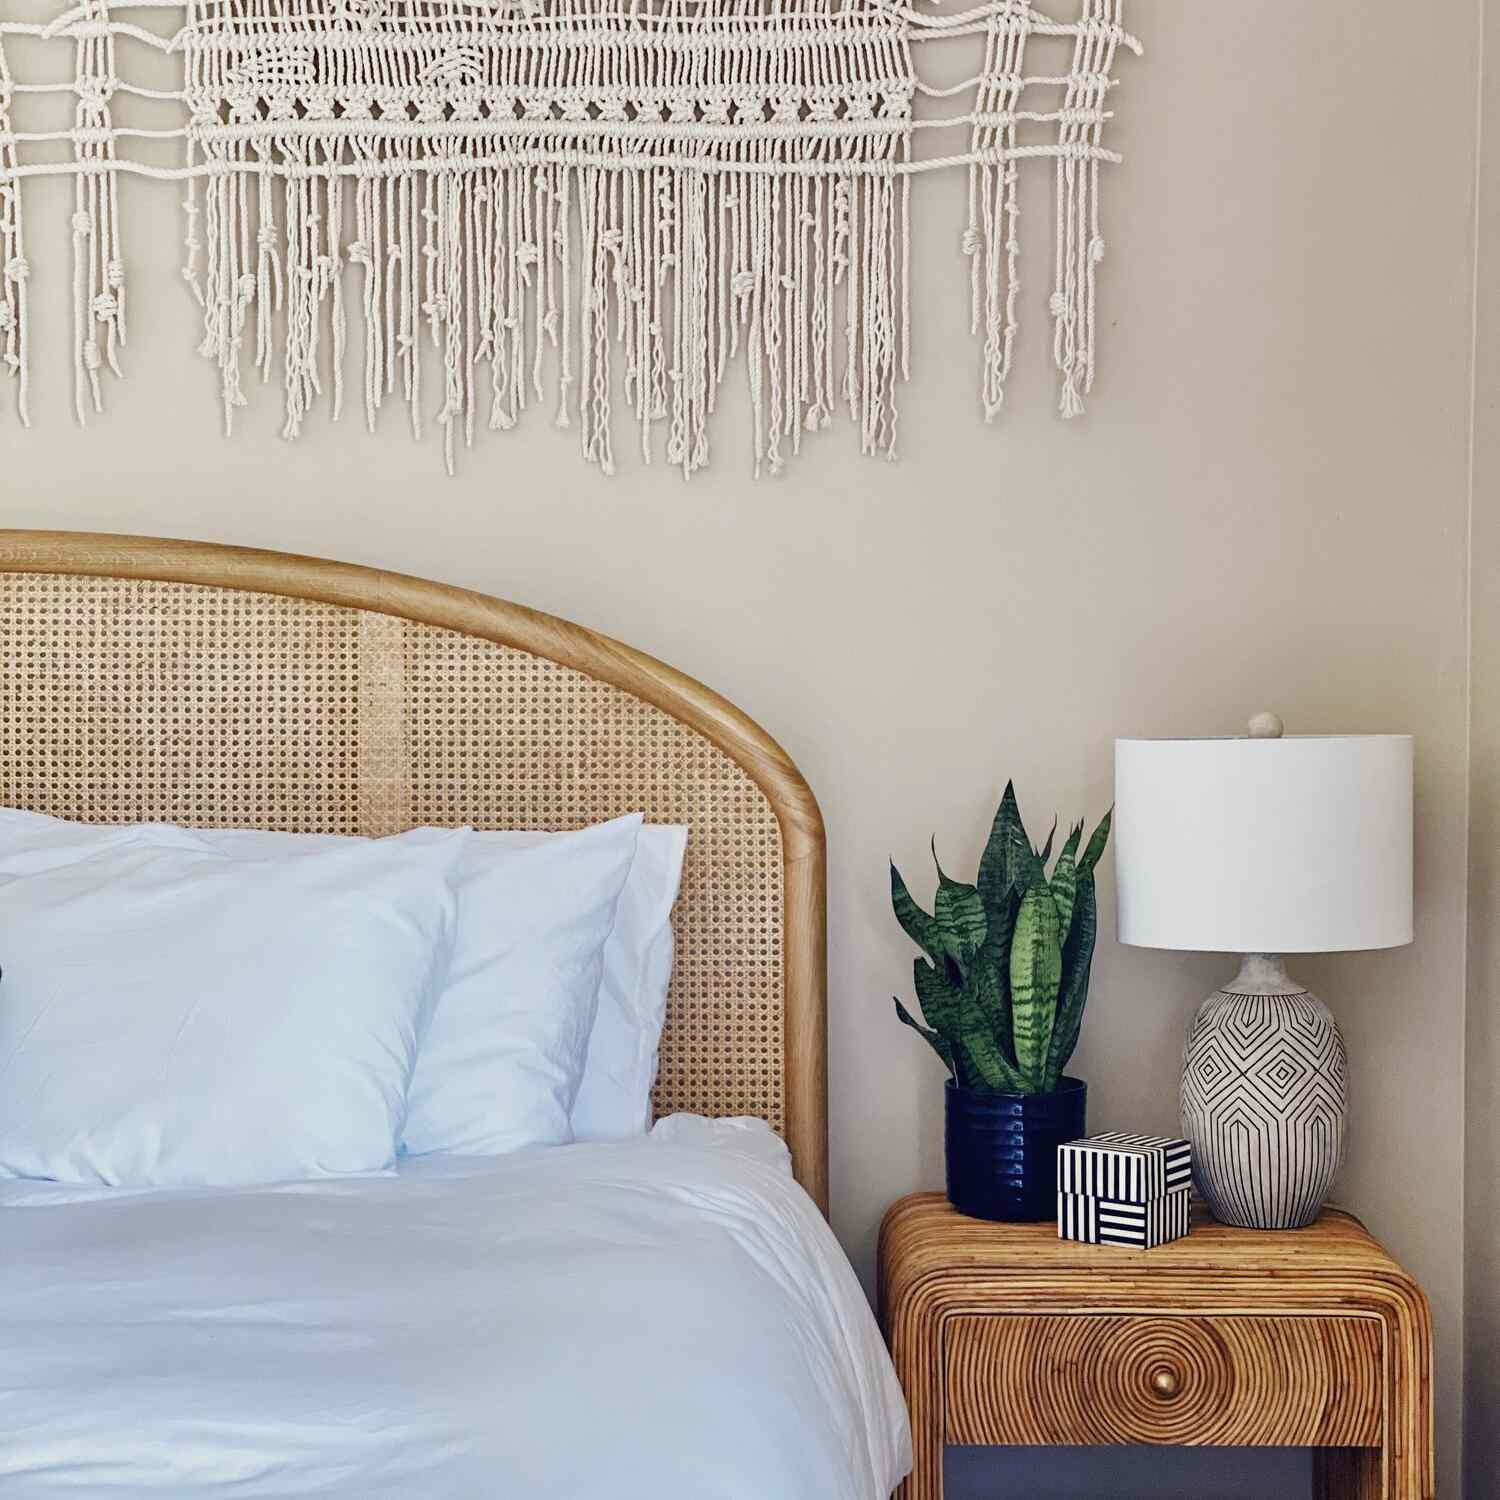 Boho chic bedroom with rattan and can furniture and a woven wall hanging